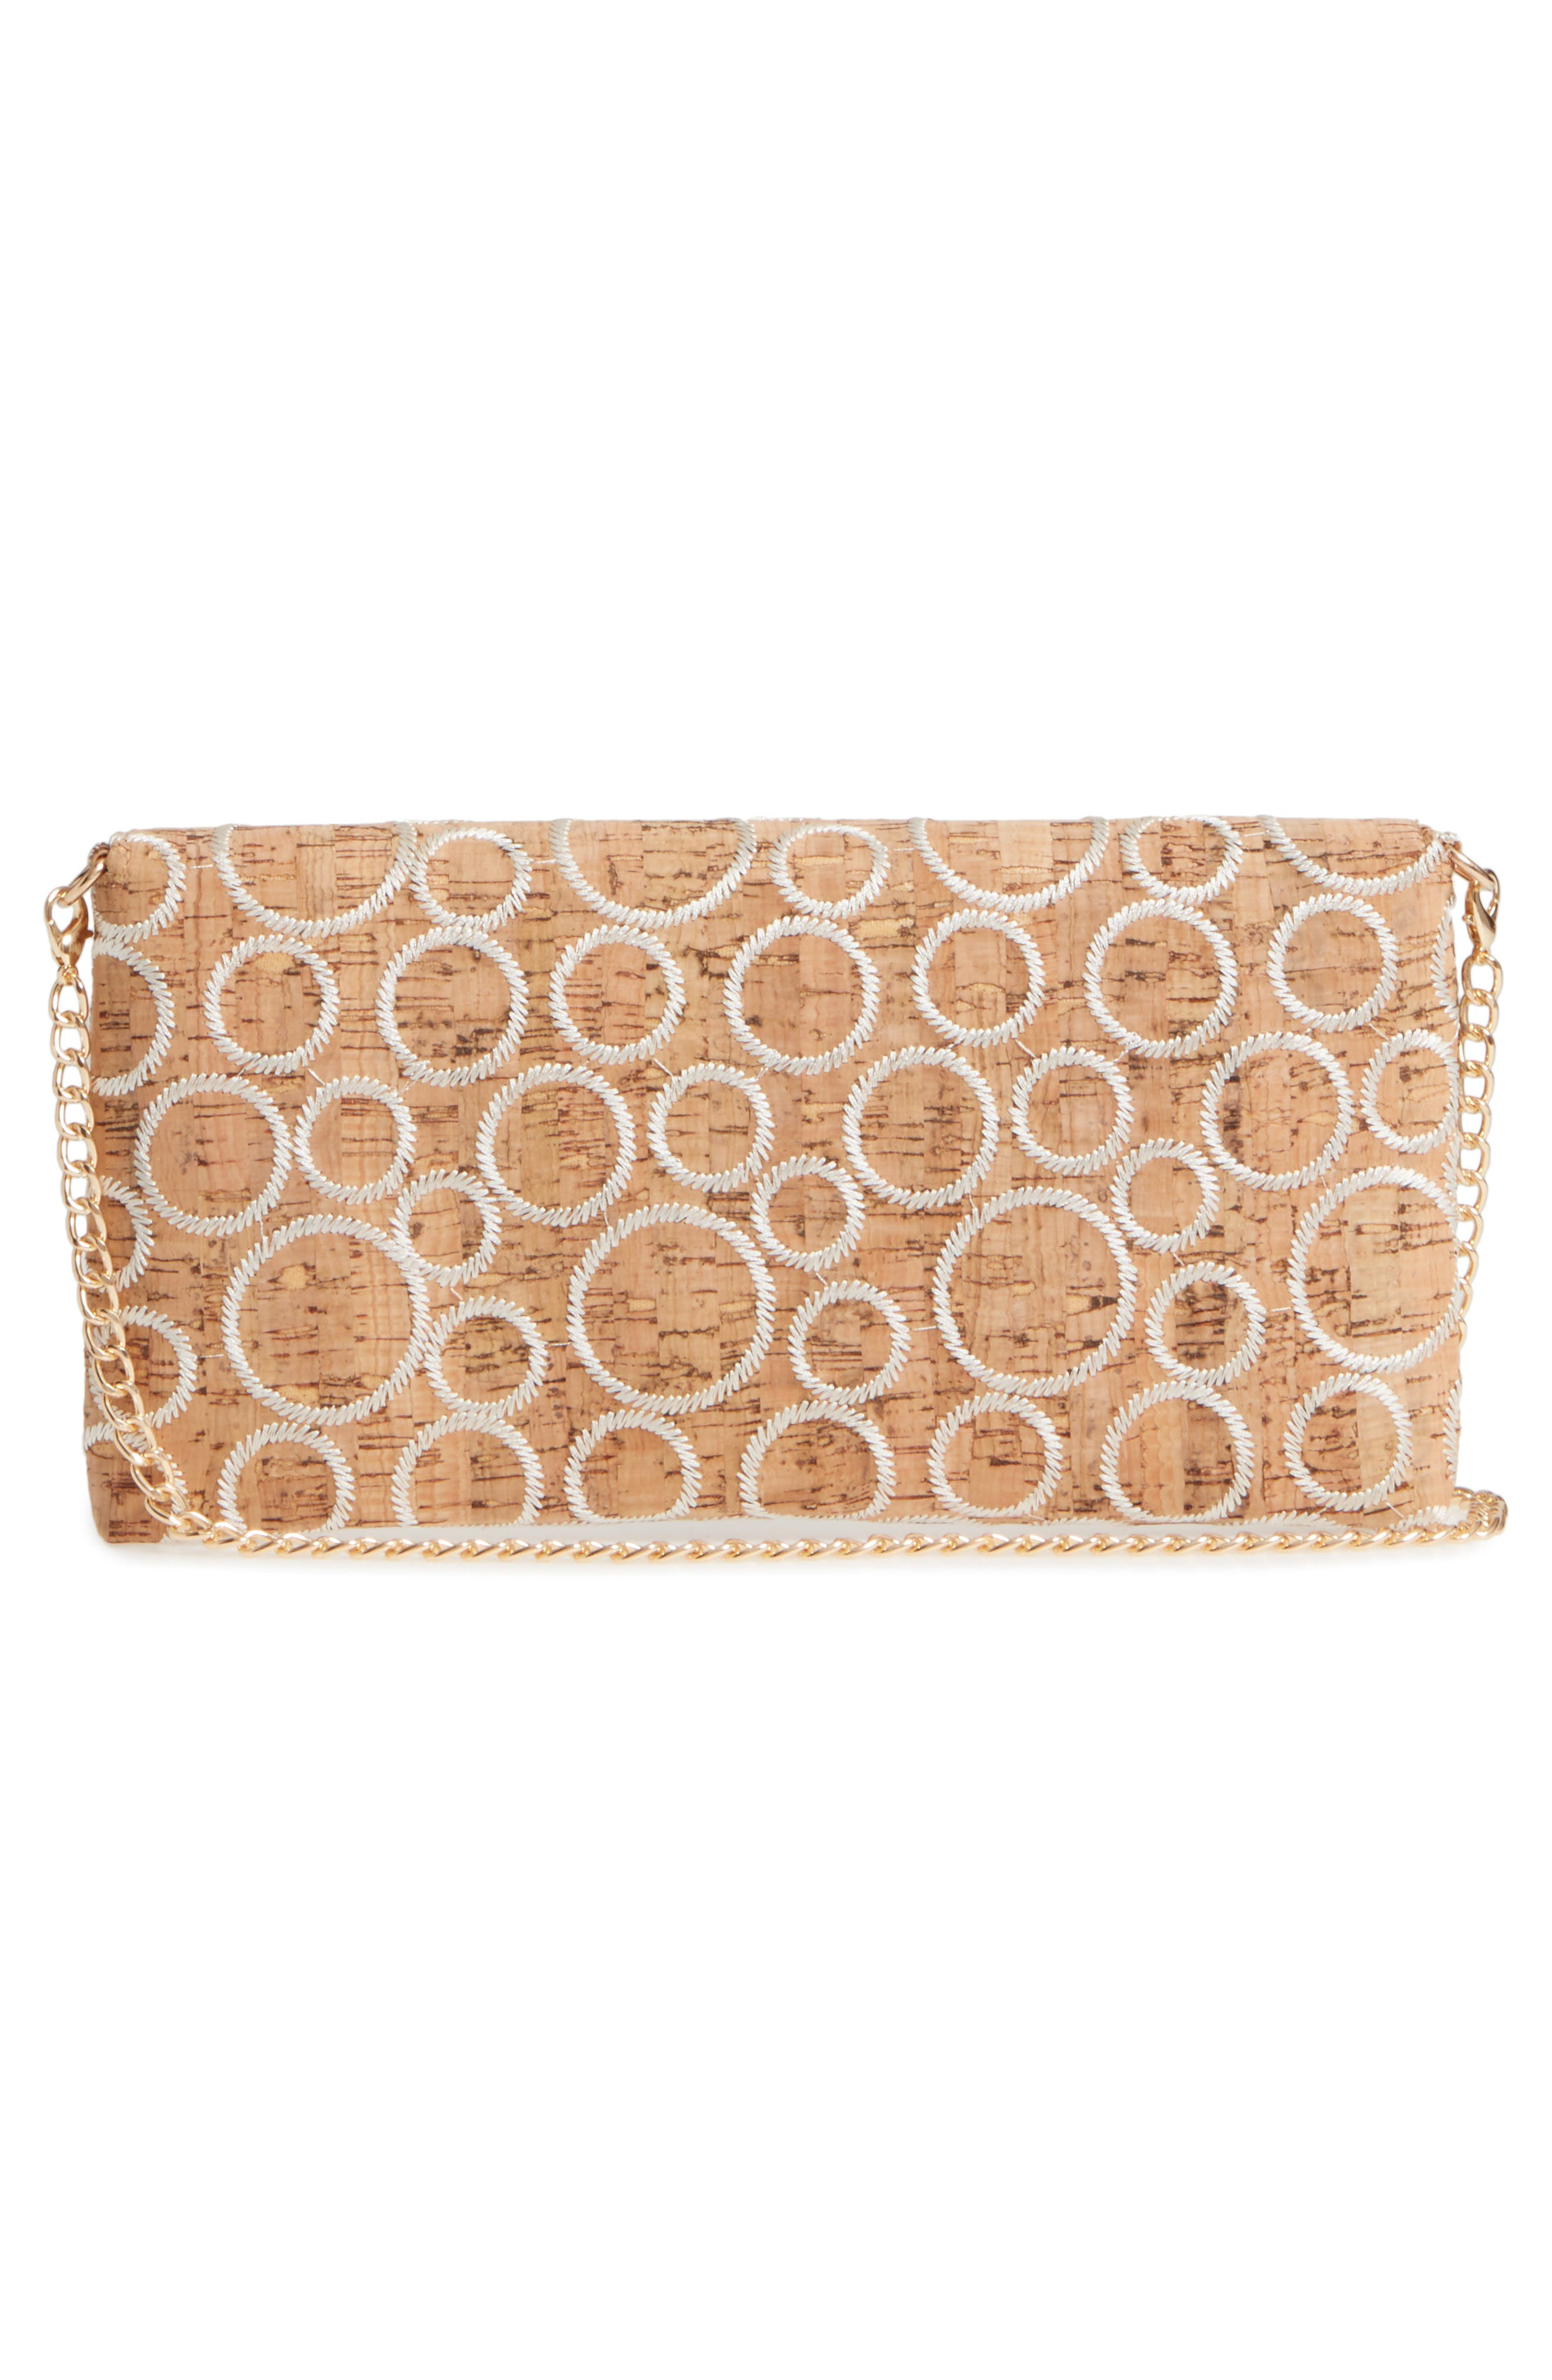 Embroidered Clutch,                             Alternate thumbnail 3, color,                             250